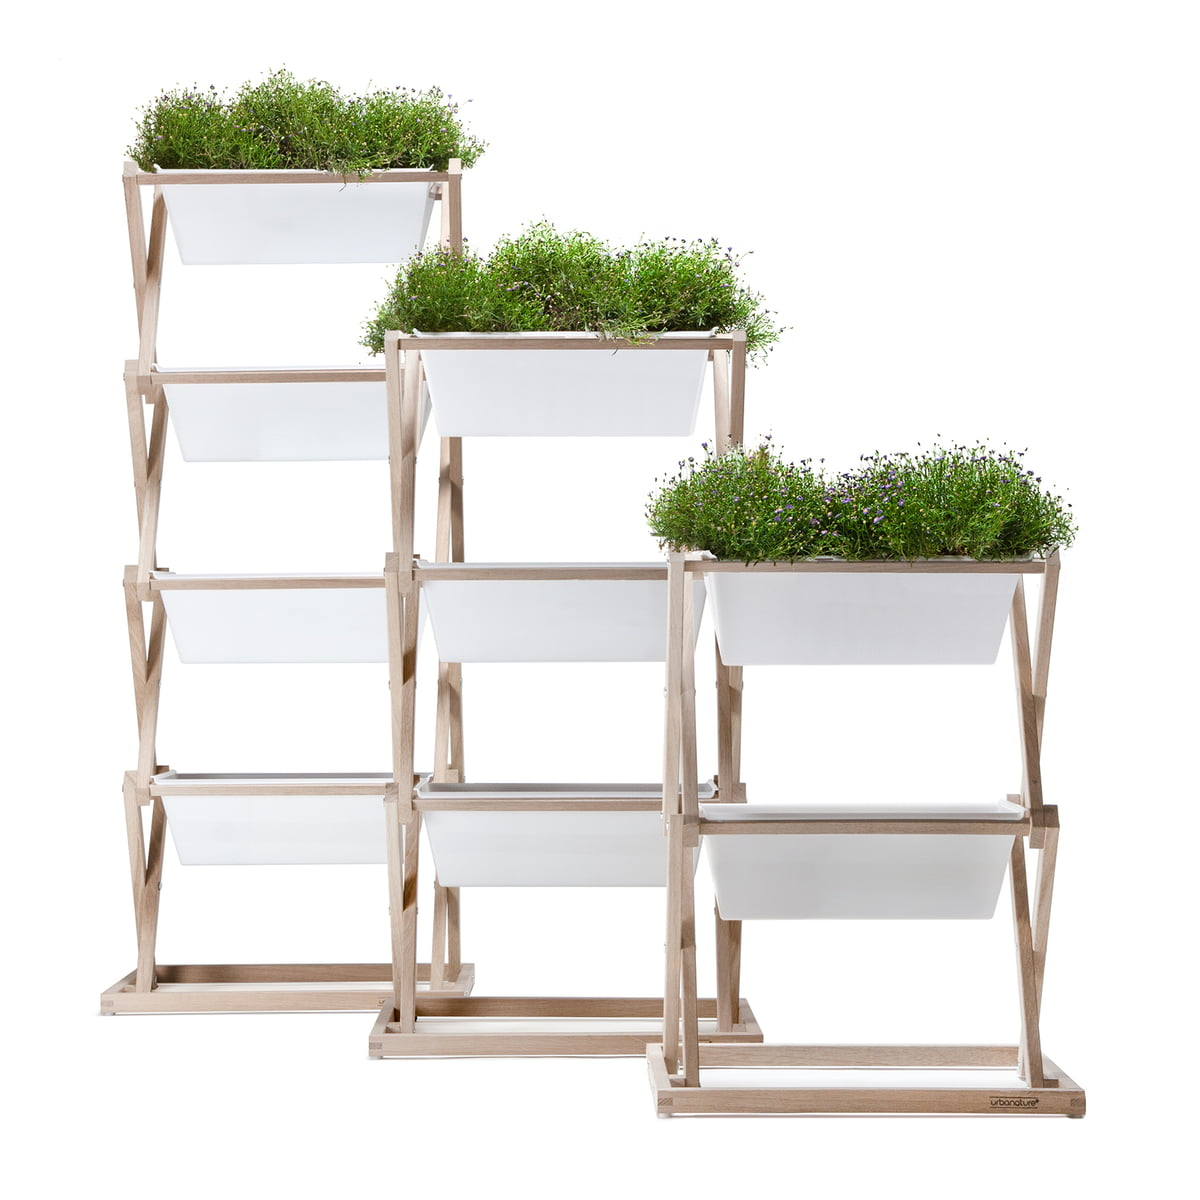 the vertical garden by urbanature in the shop, Gartenarbeit ideen